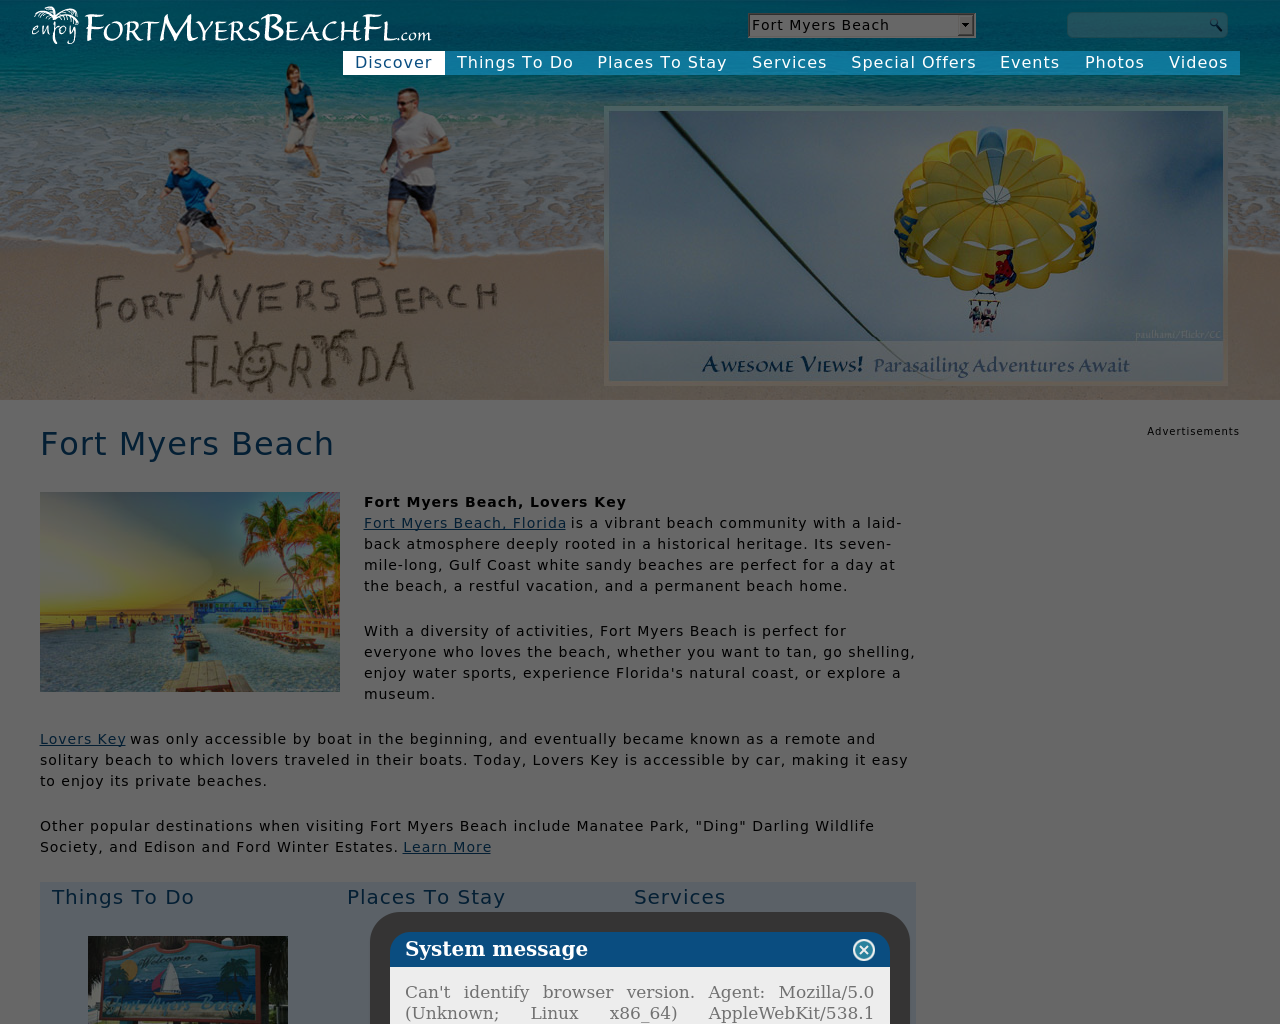 enjoyFortMyersBeachFL.com-Advertising-Reviews-Pricing